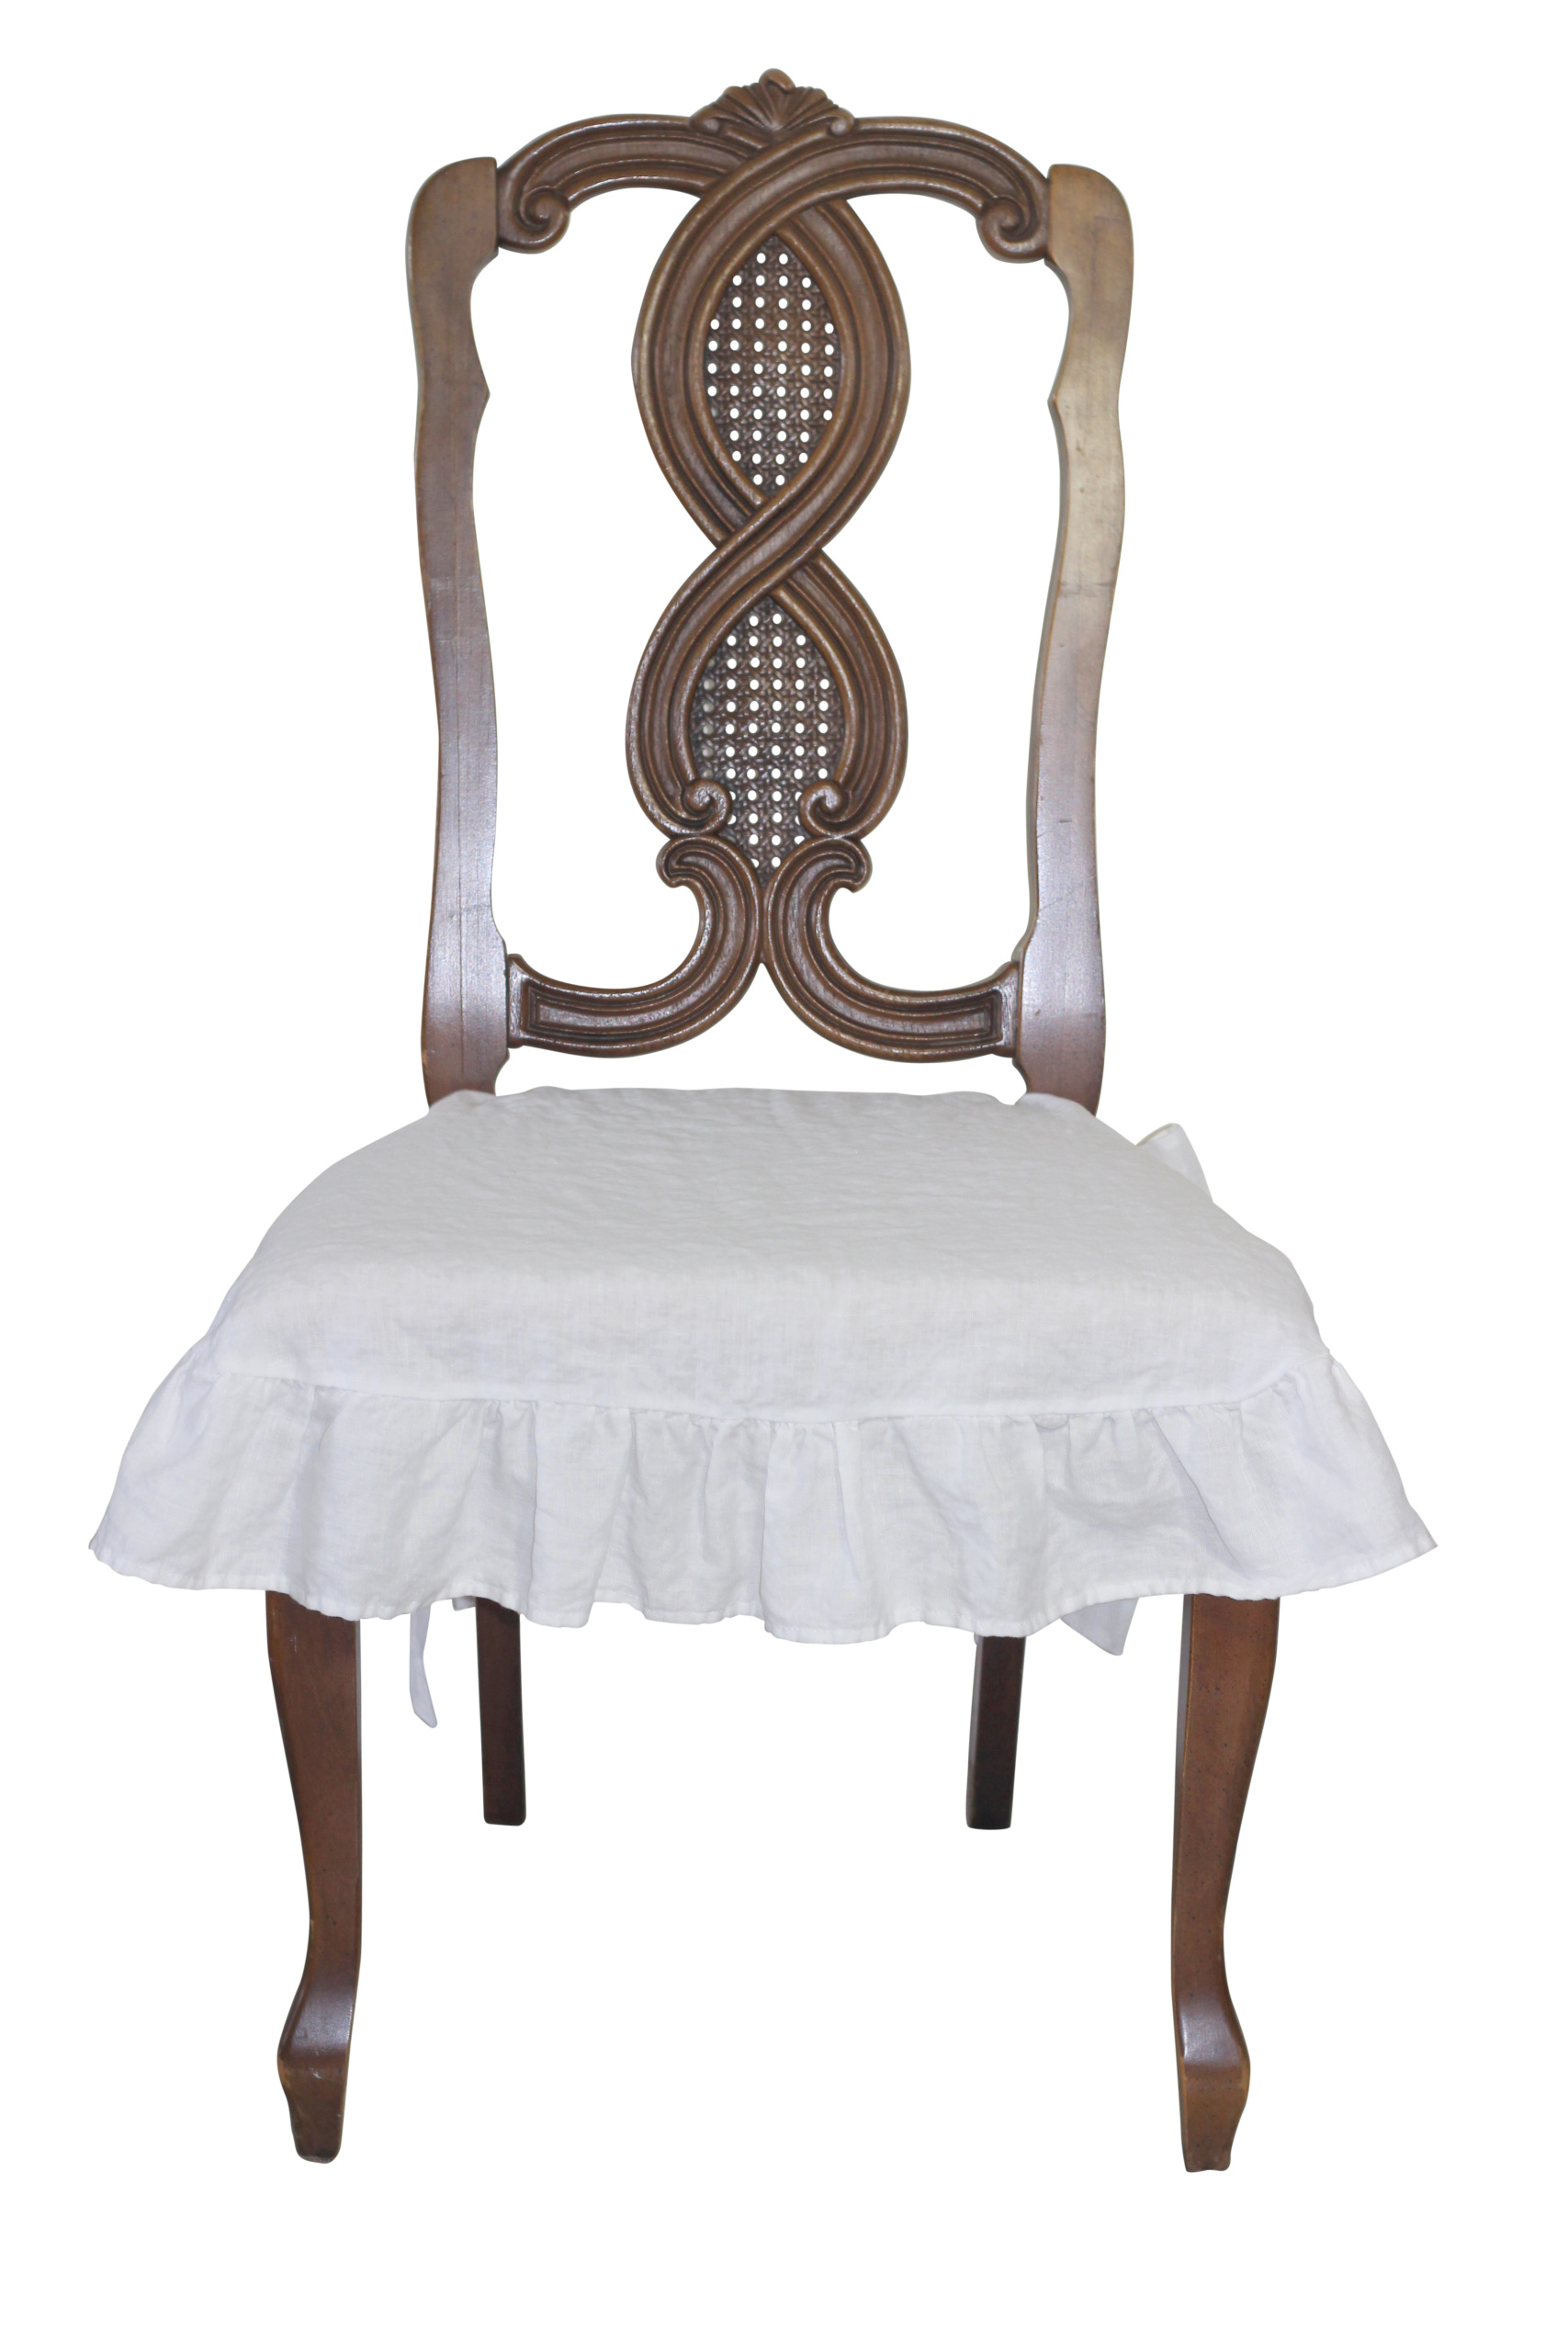 Linen Dining Chair Covers 100 Linen Chair Seat Cover With Ruffle